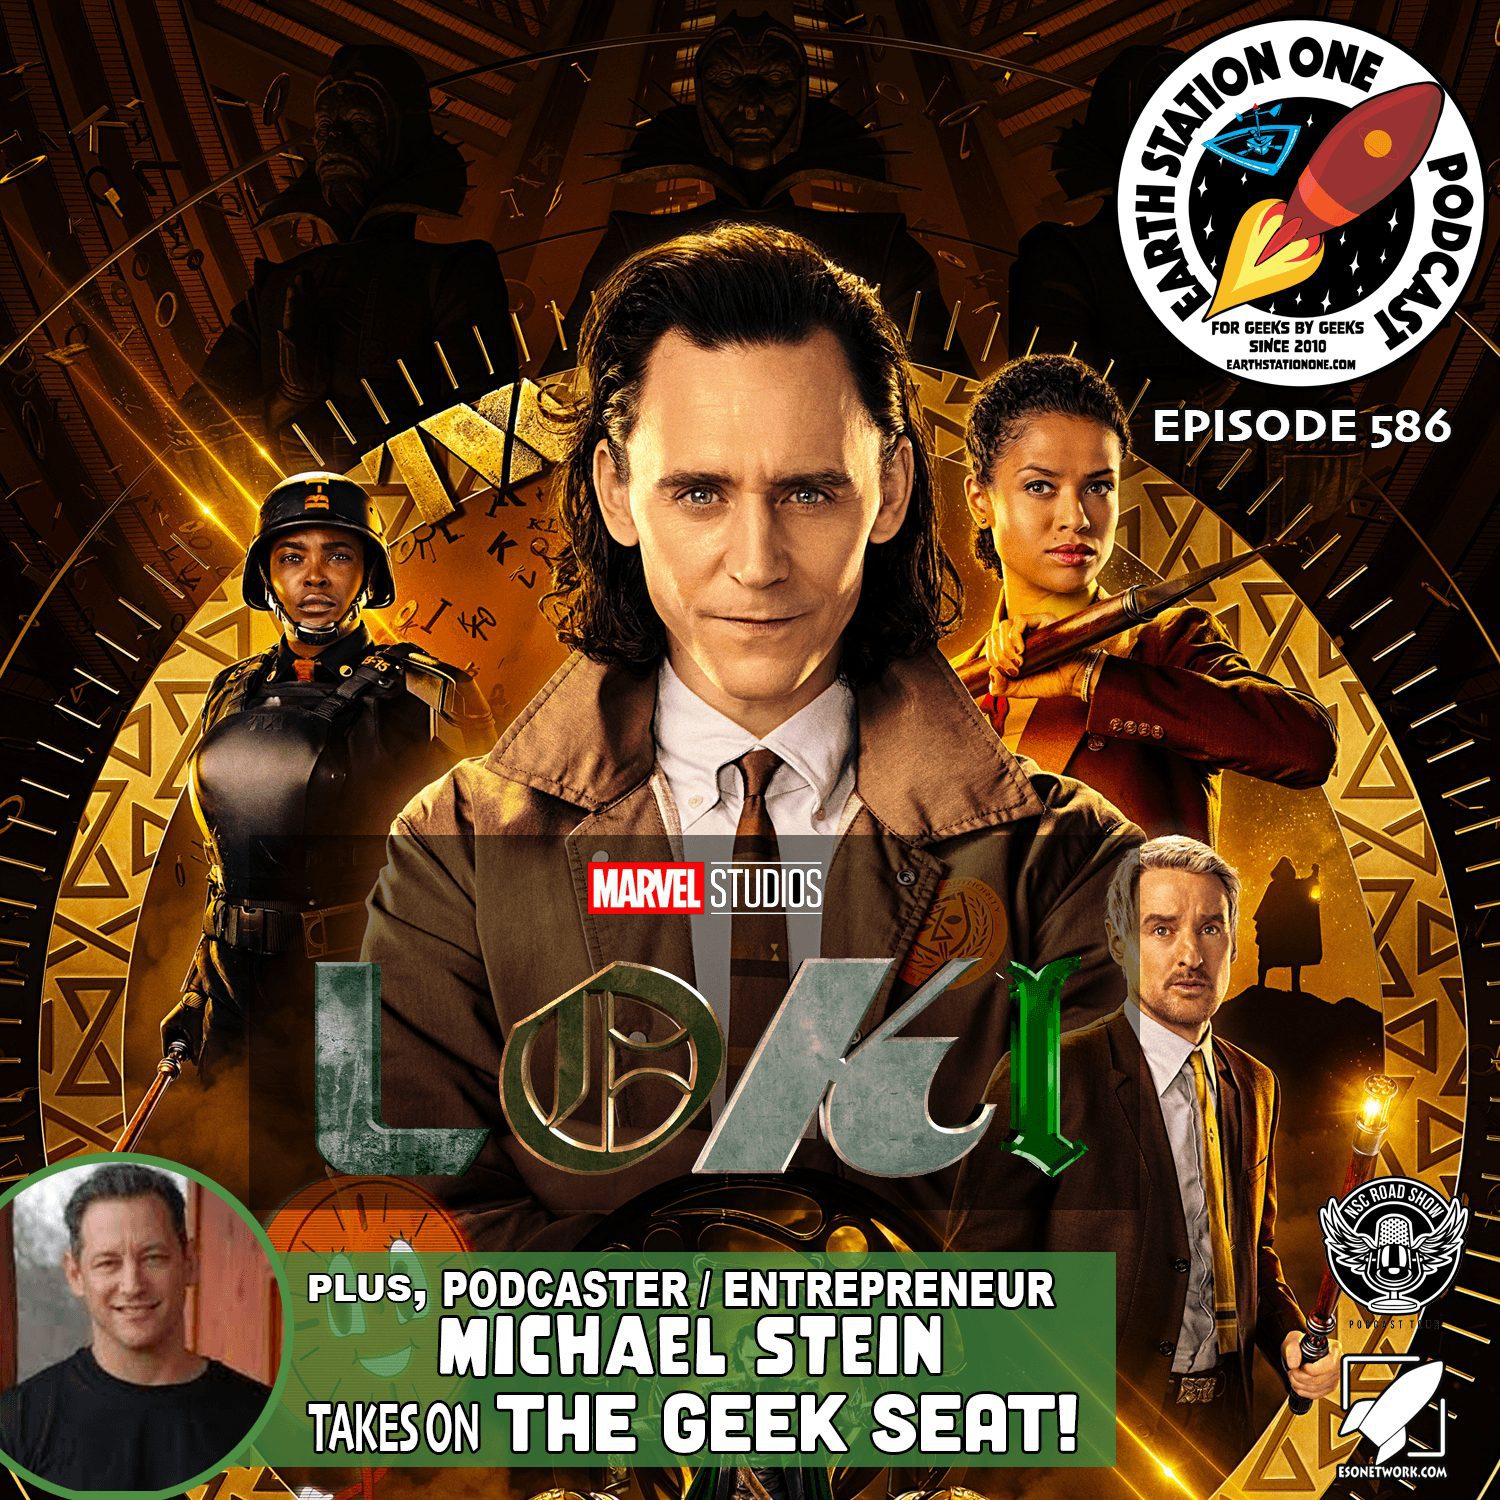 Earth Station One Podcast Ep 586 - Loki Season 1 Review